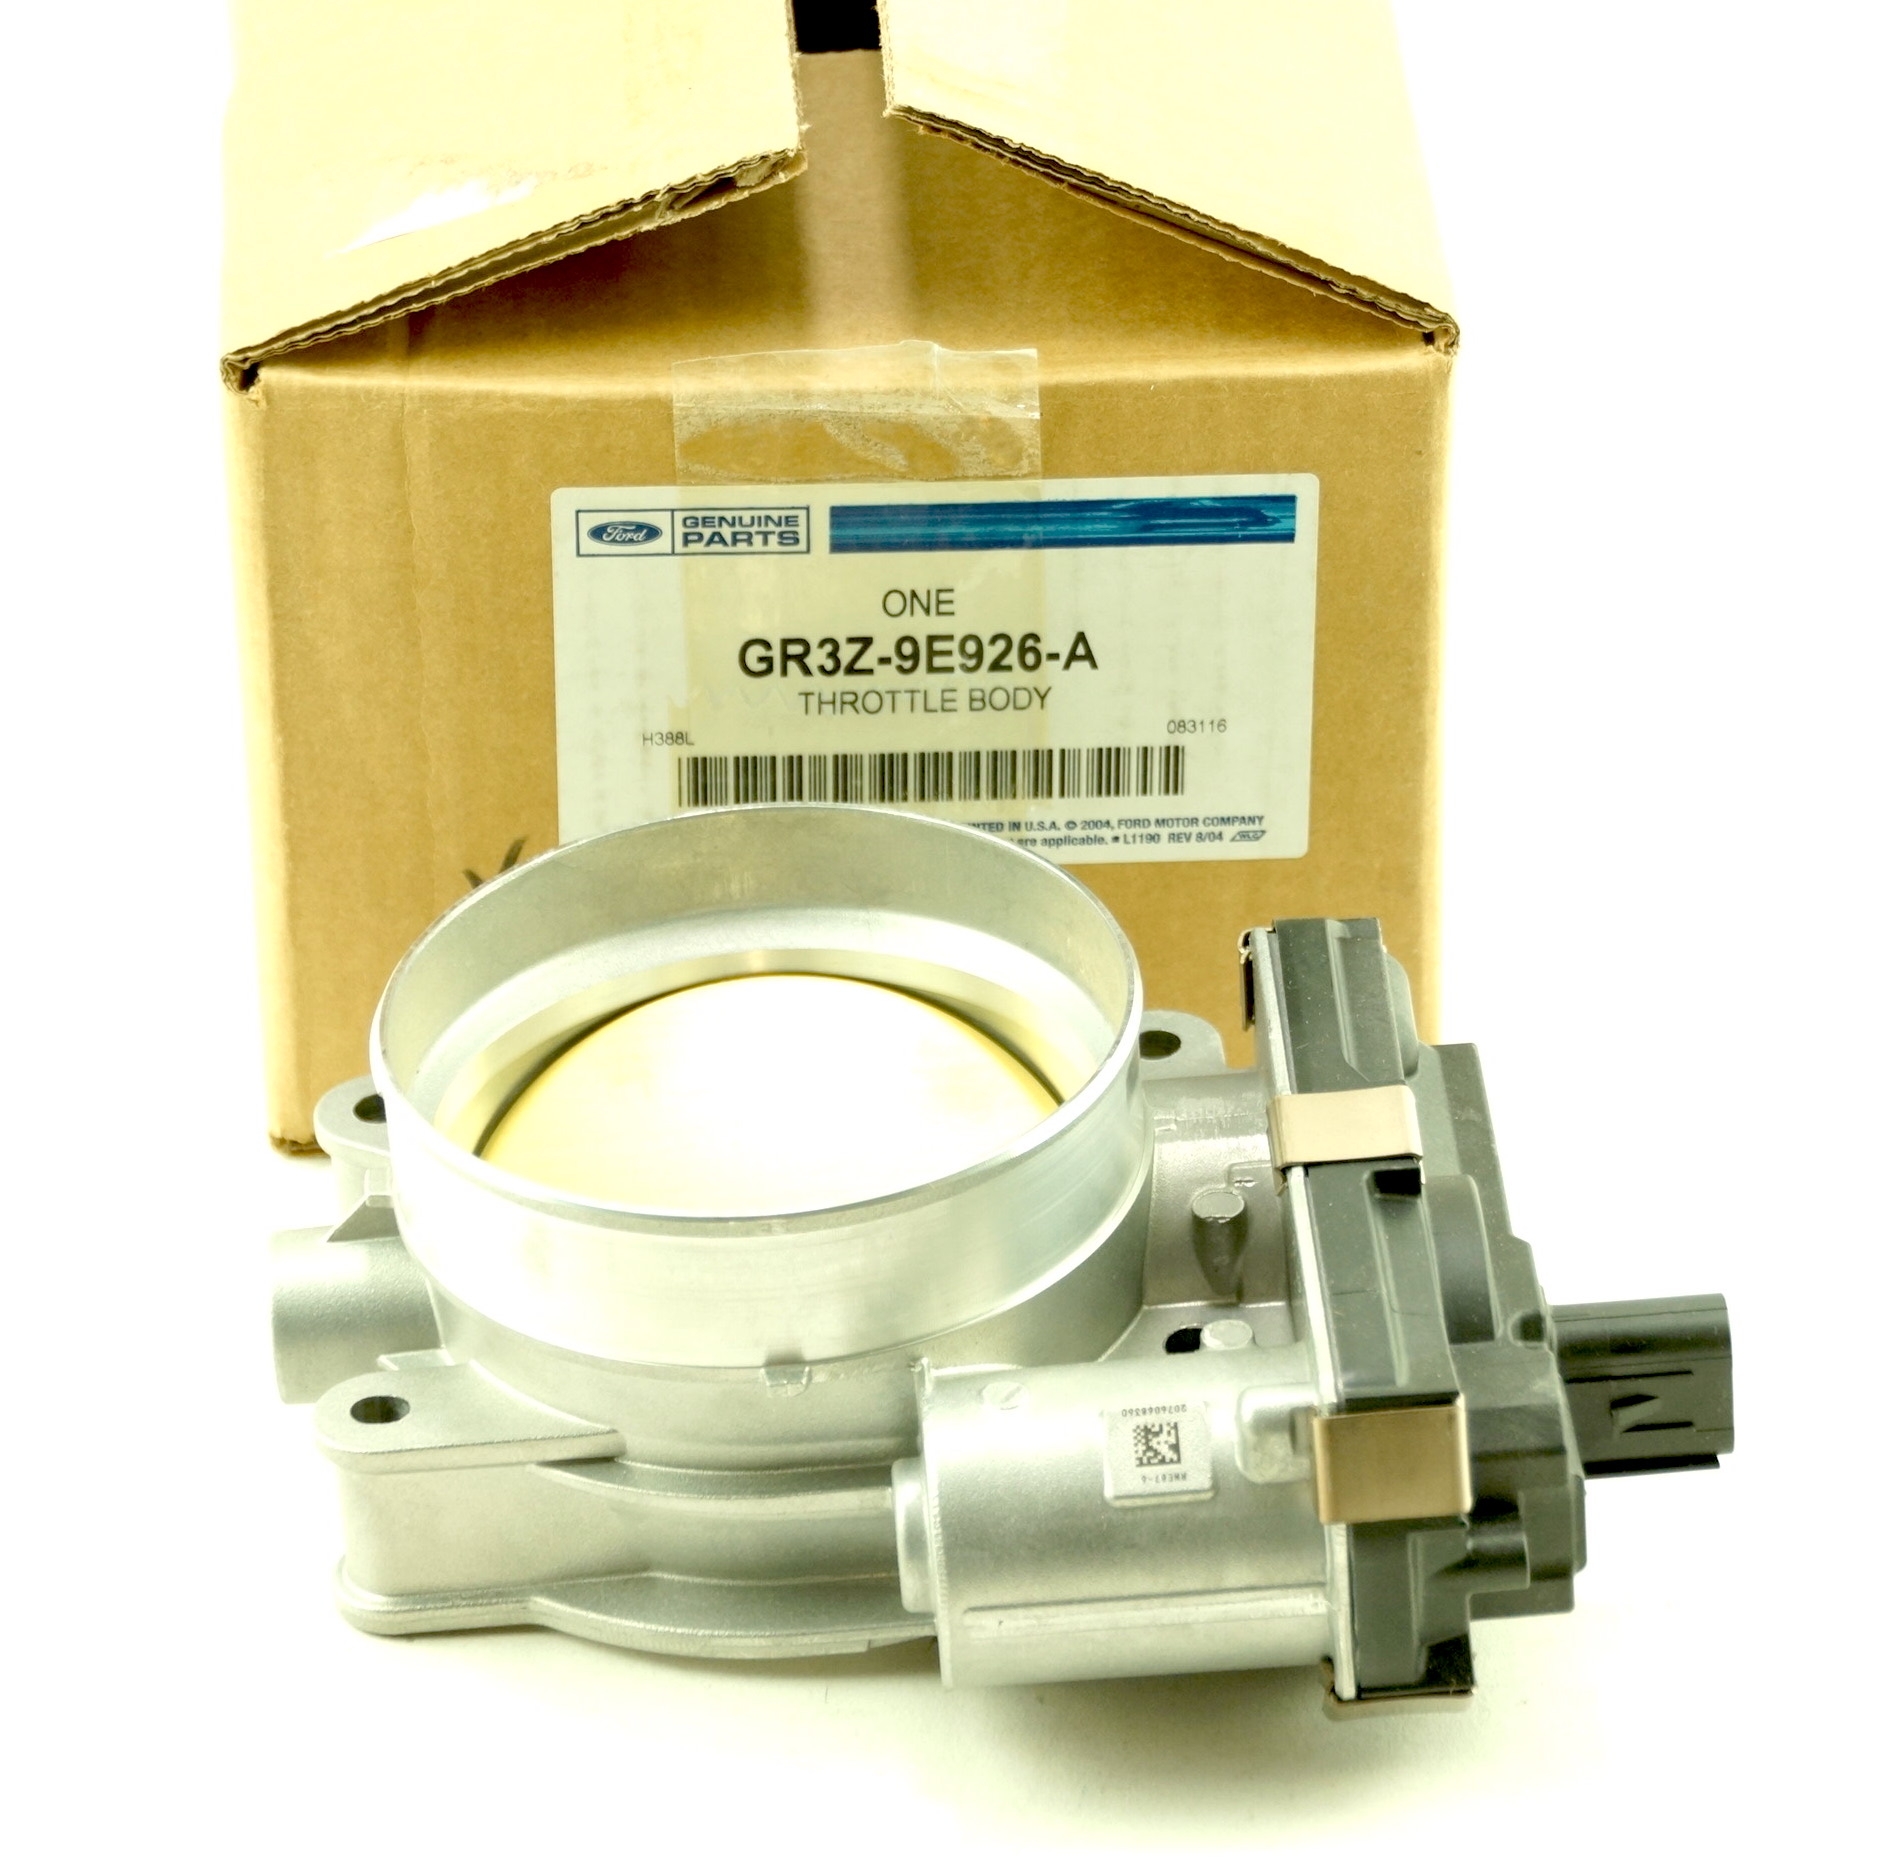 Genuine OEM GR3Z9E926A Ford 15-17 Mustang Throttle Body New Fast Free Shipping - image 1